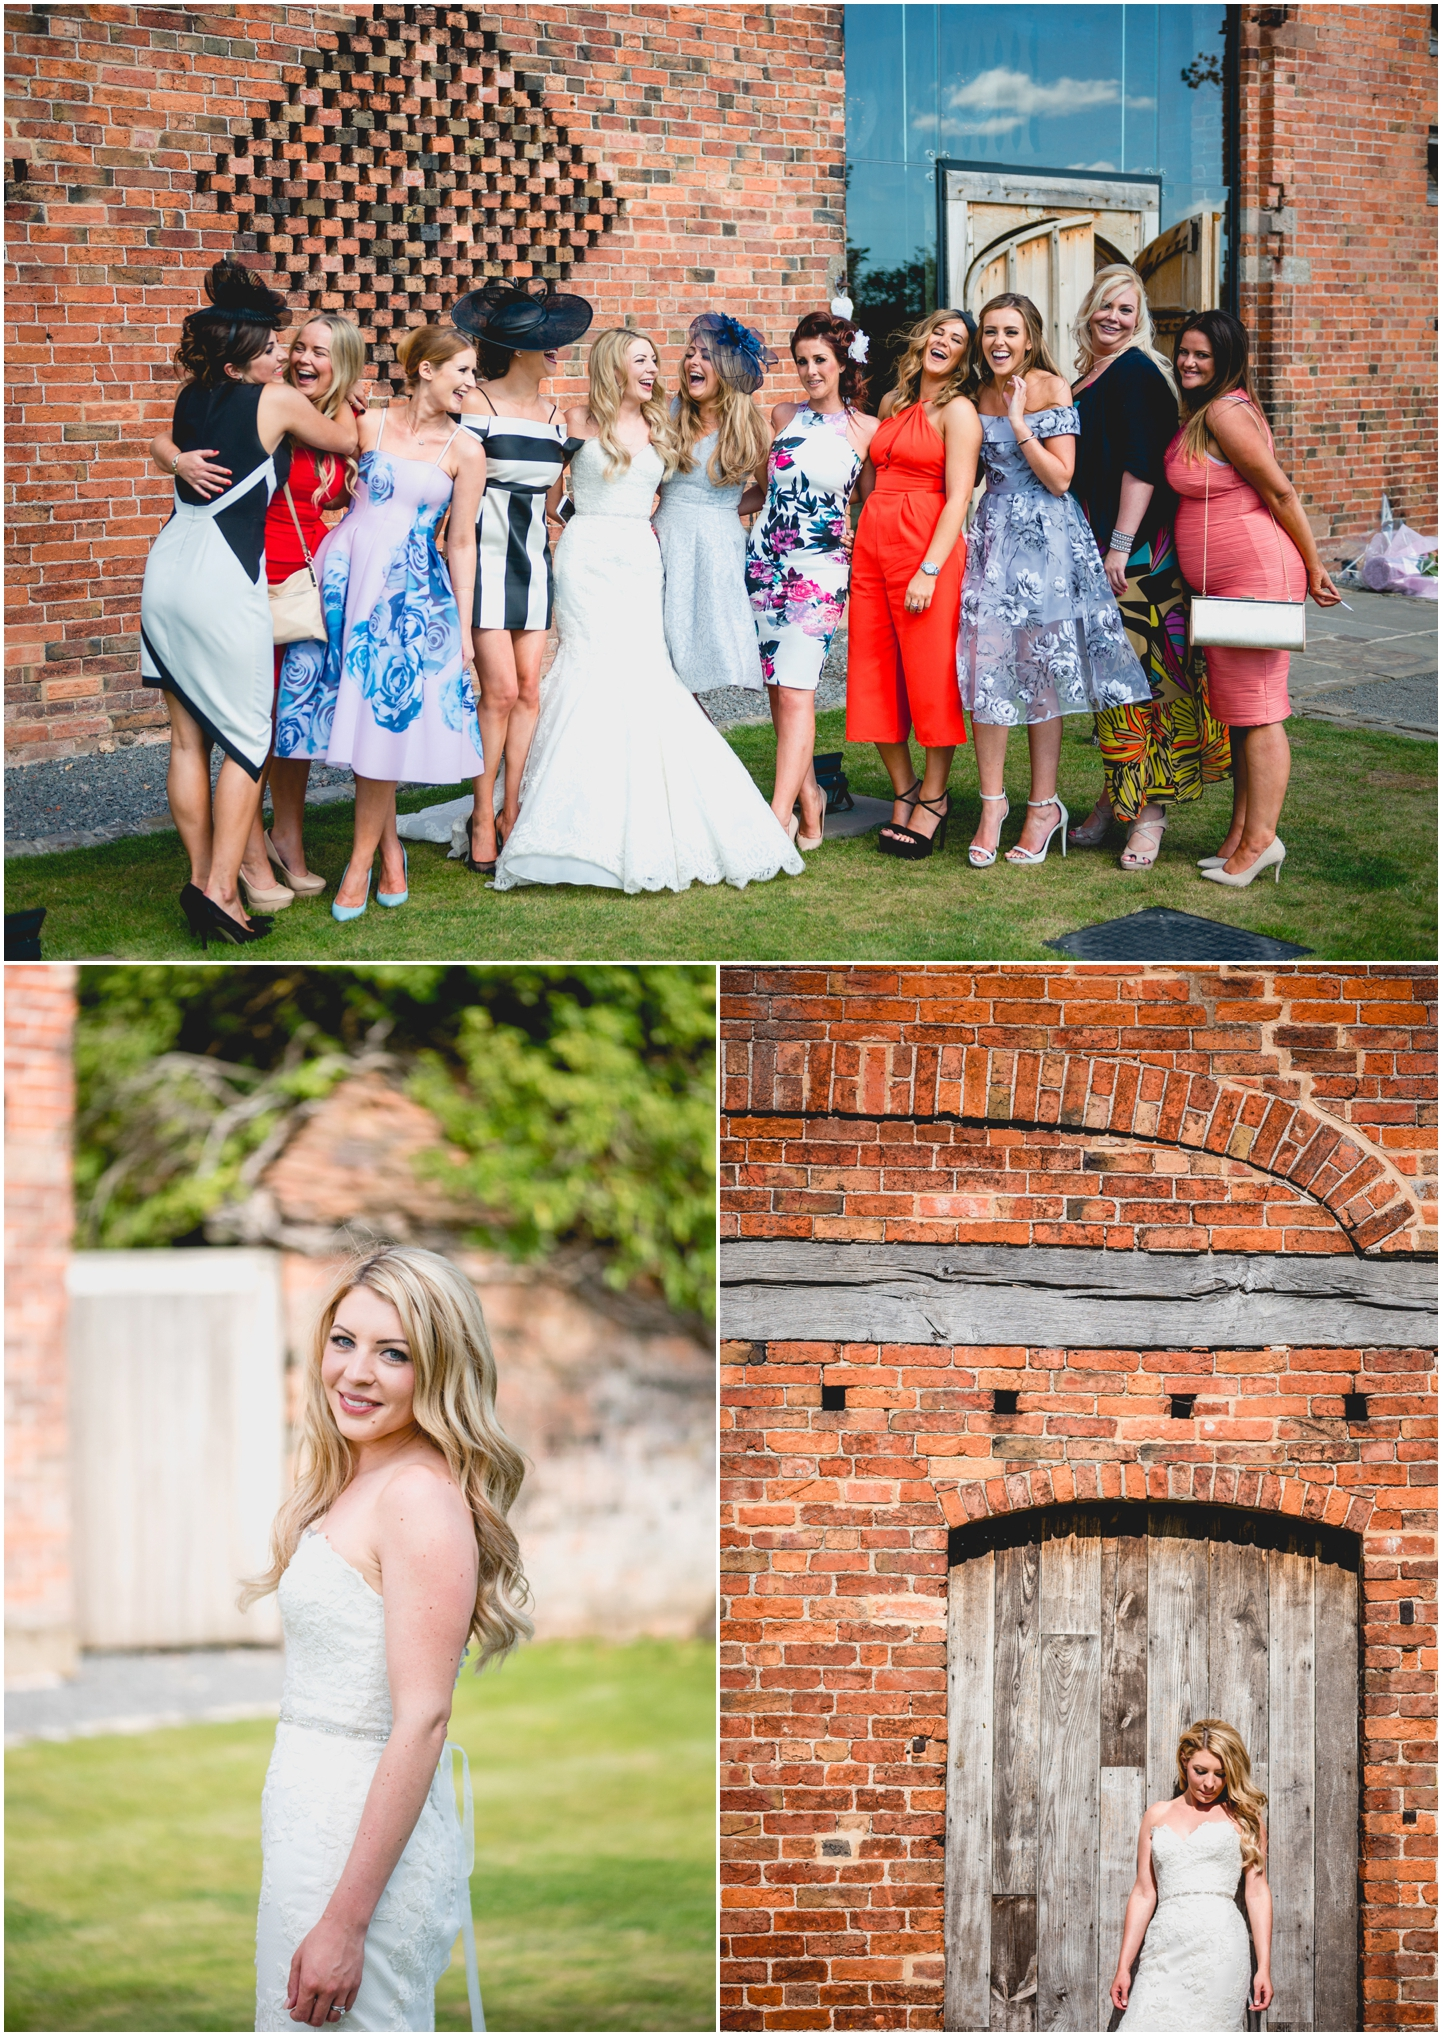 Cara and Maurice at Shustoke Barns, Summer wedding by Lisa Carpenter Photography, Birmingham, West Midlands based wedding photographer